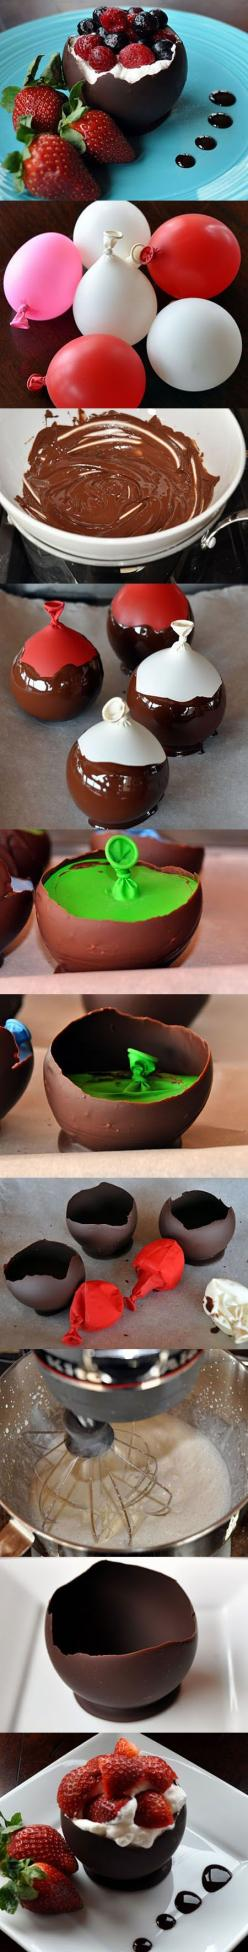 - This actually works really well. Just make sure to wash the balloons and make sure they are 100% dry before dipping in chocolate or you will get white spots on your chocolate.: Cake, Idea, Desert, Chocolate Bowls, Sweet, Food, Dessert